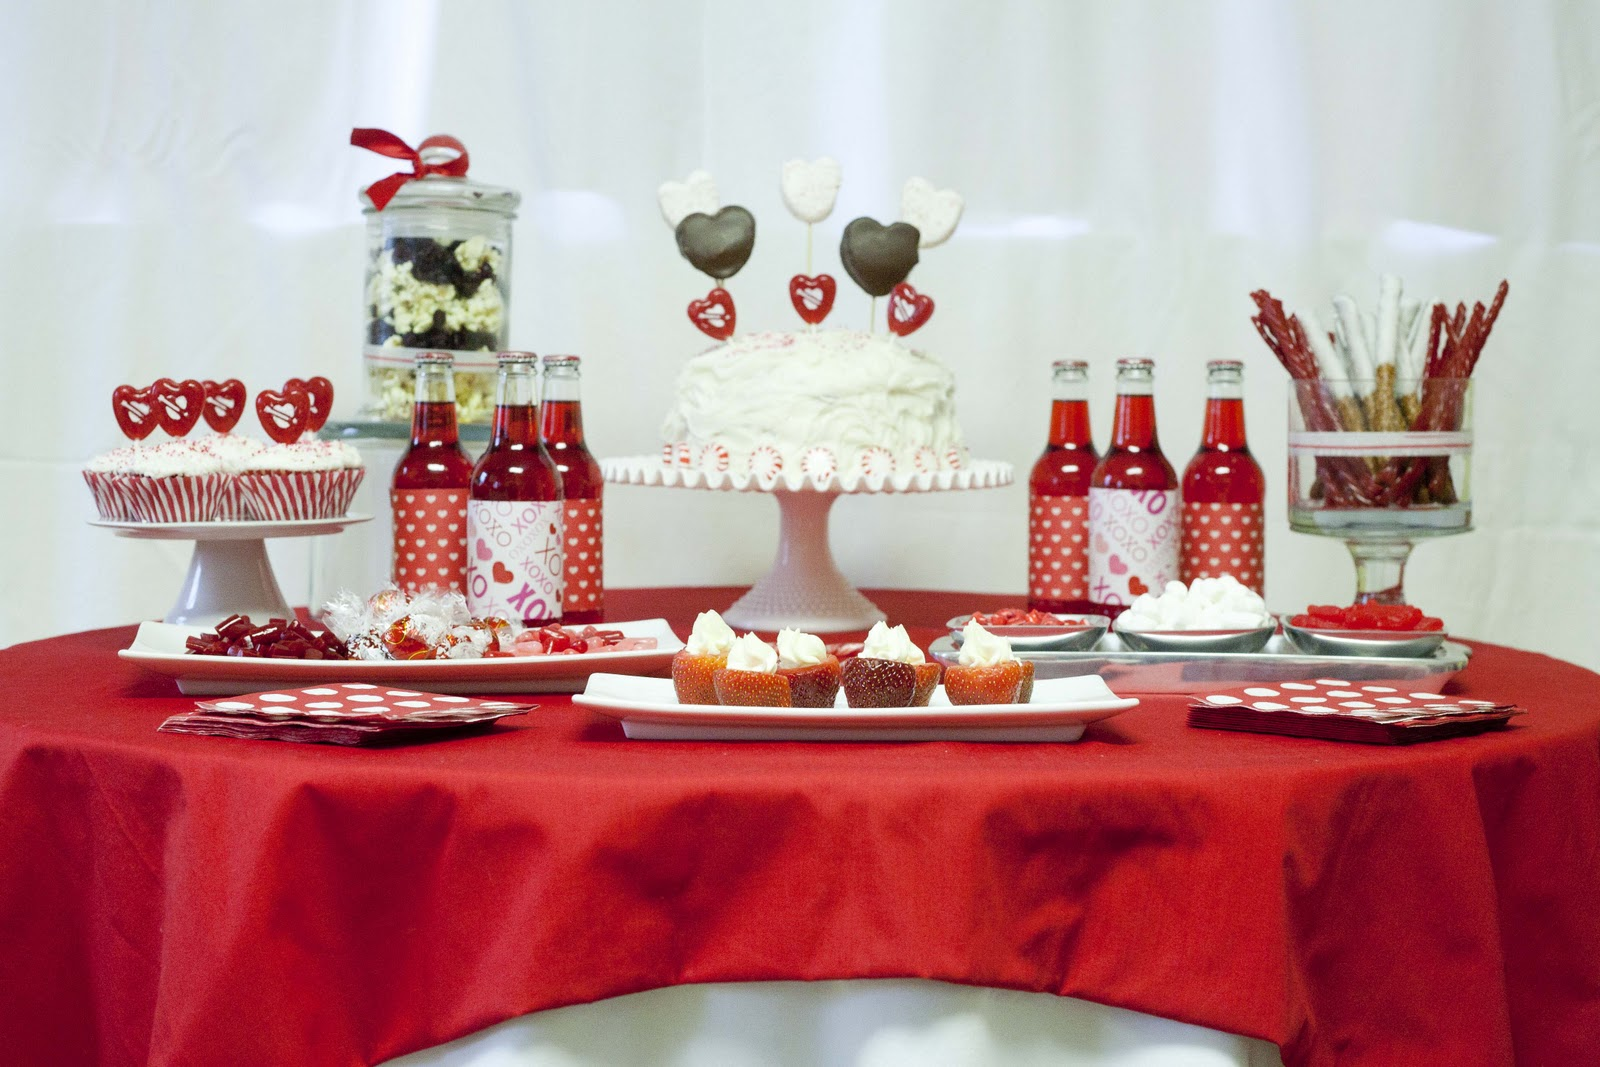 D i y louisville d i y dessert table on a budget - La table a dessert ...